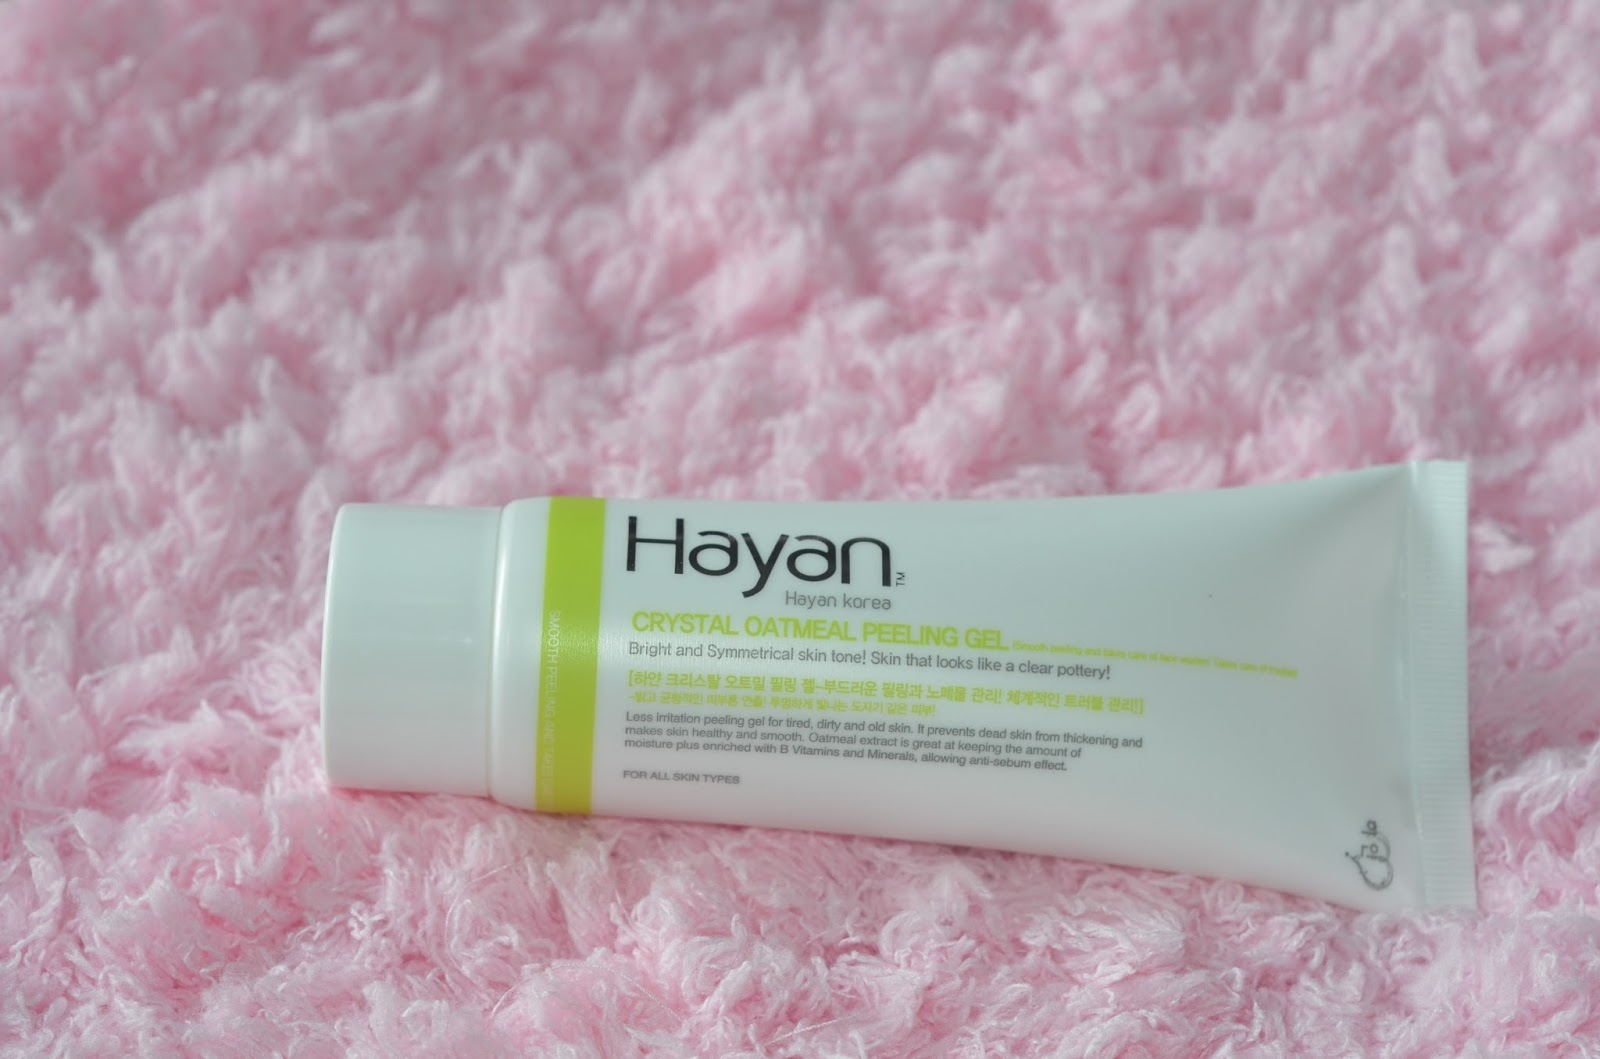 Hayan Korea Crystal Oatmeal Peeling Gel review